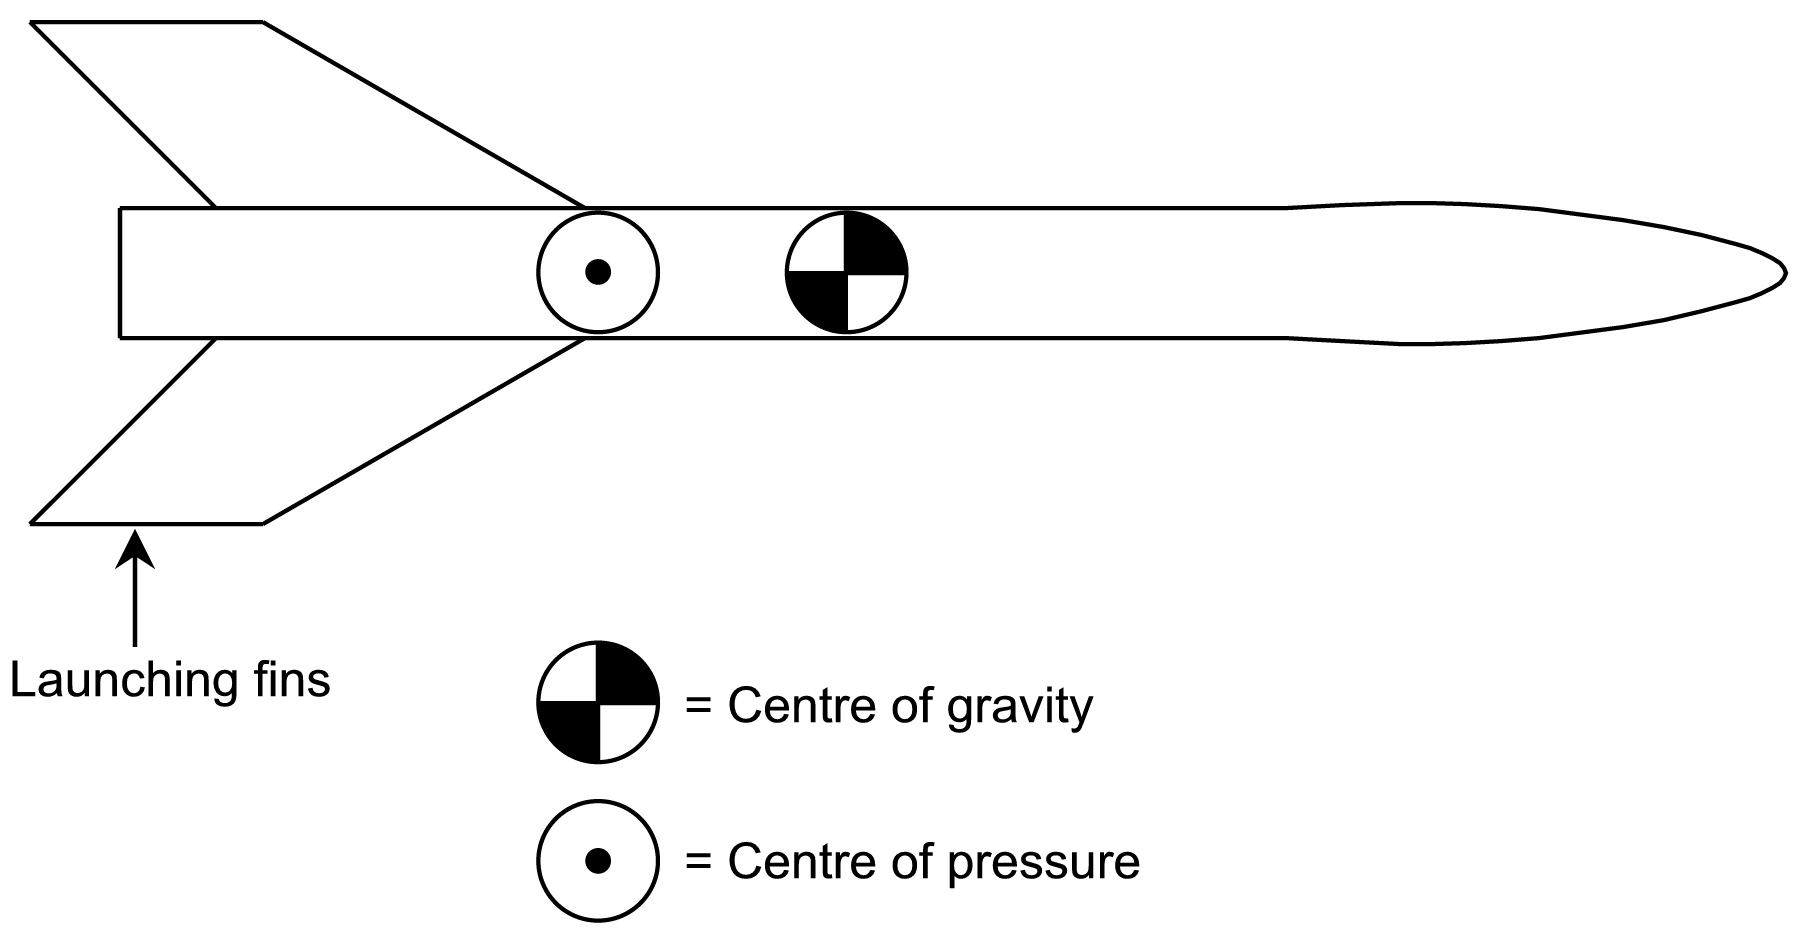 Finding Arockets Centre Of Gravity